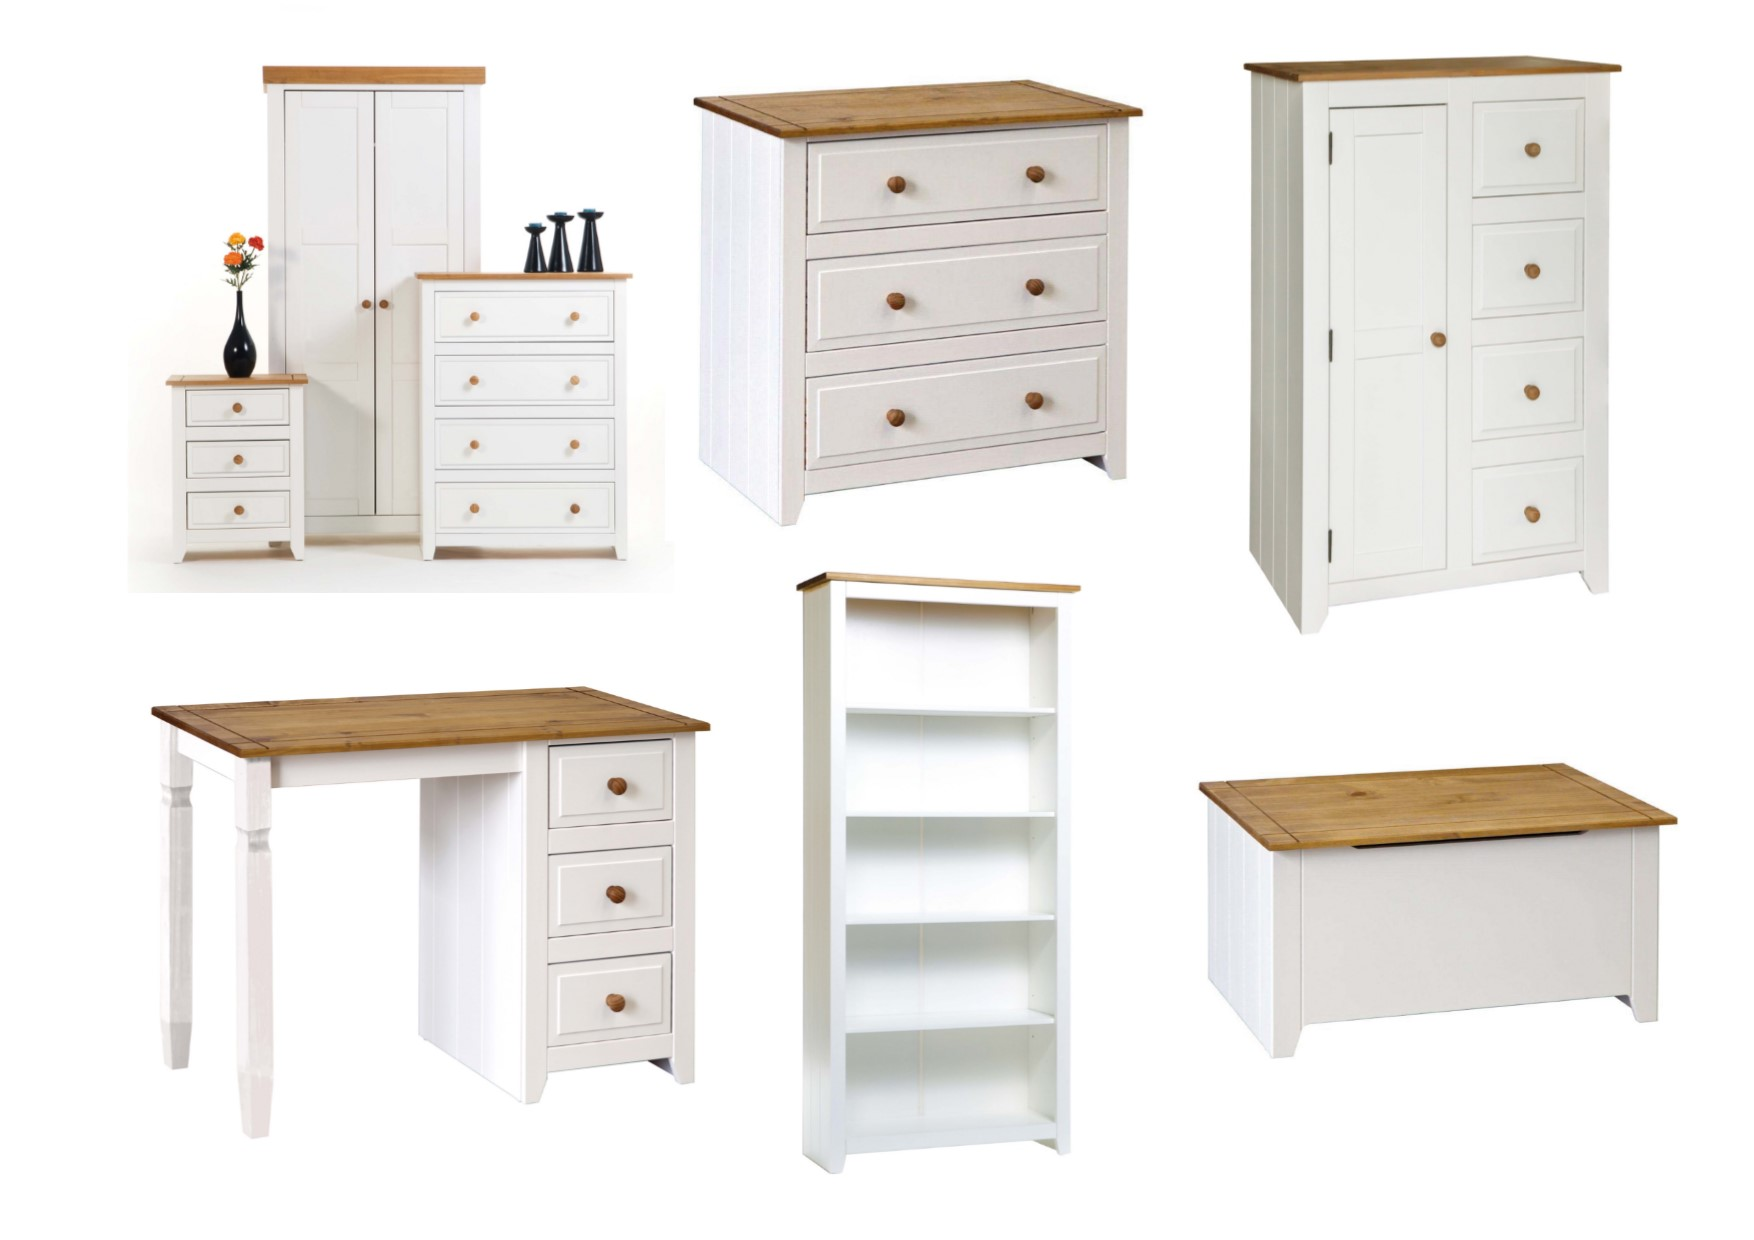 Capri white pine bedroom furniture bedside drawers wardrobe desk storage ebay for Bedroom set with storage drawers